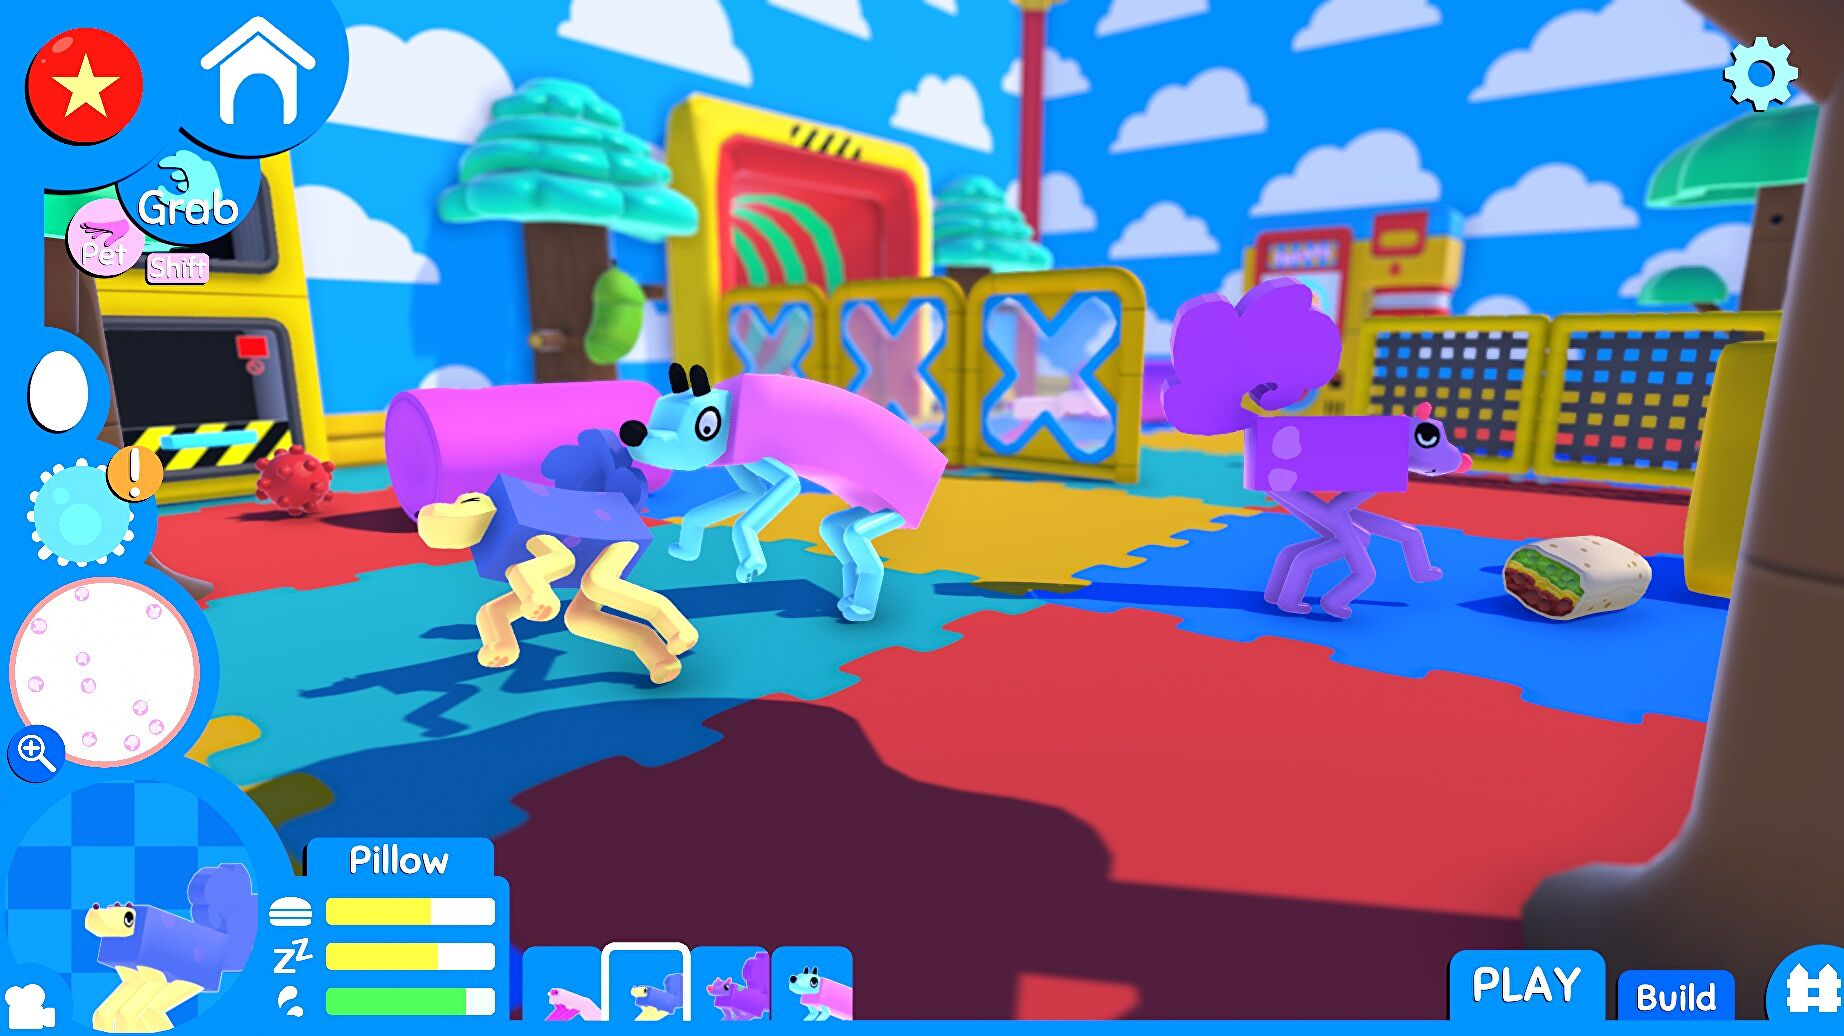 Blocky physics-based pet sim Wobbledogs hits early access today